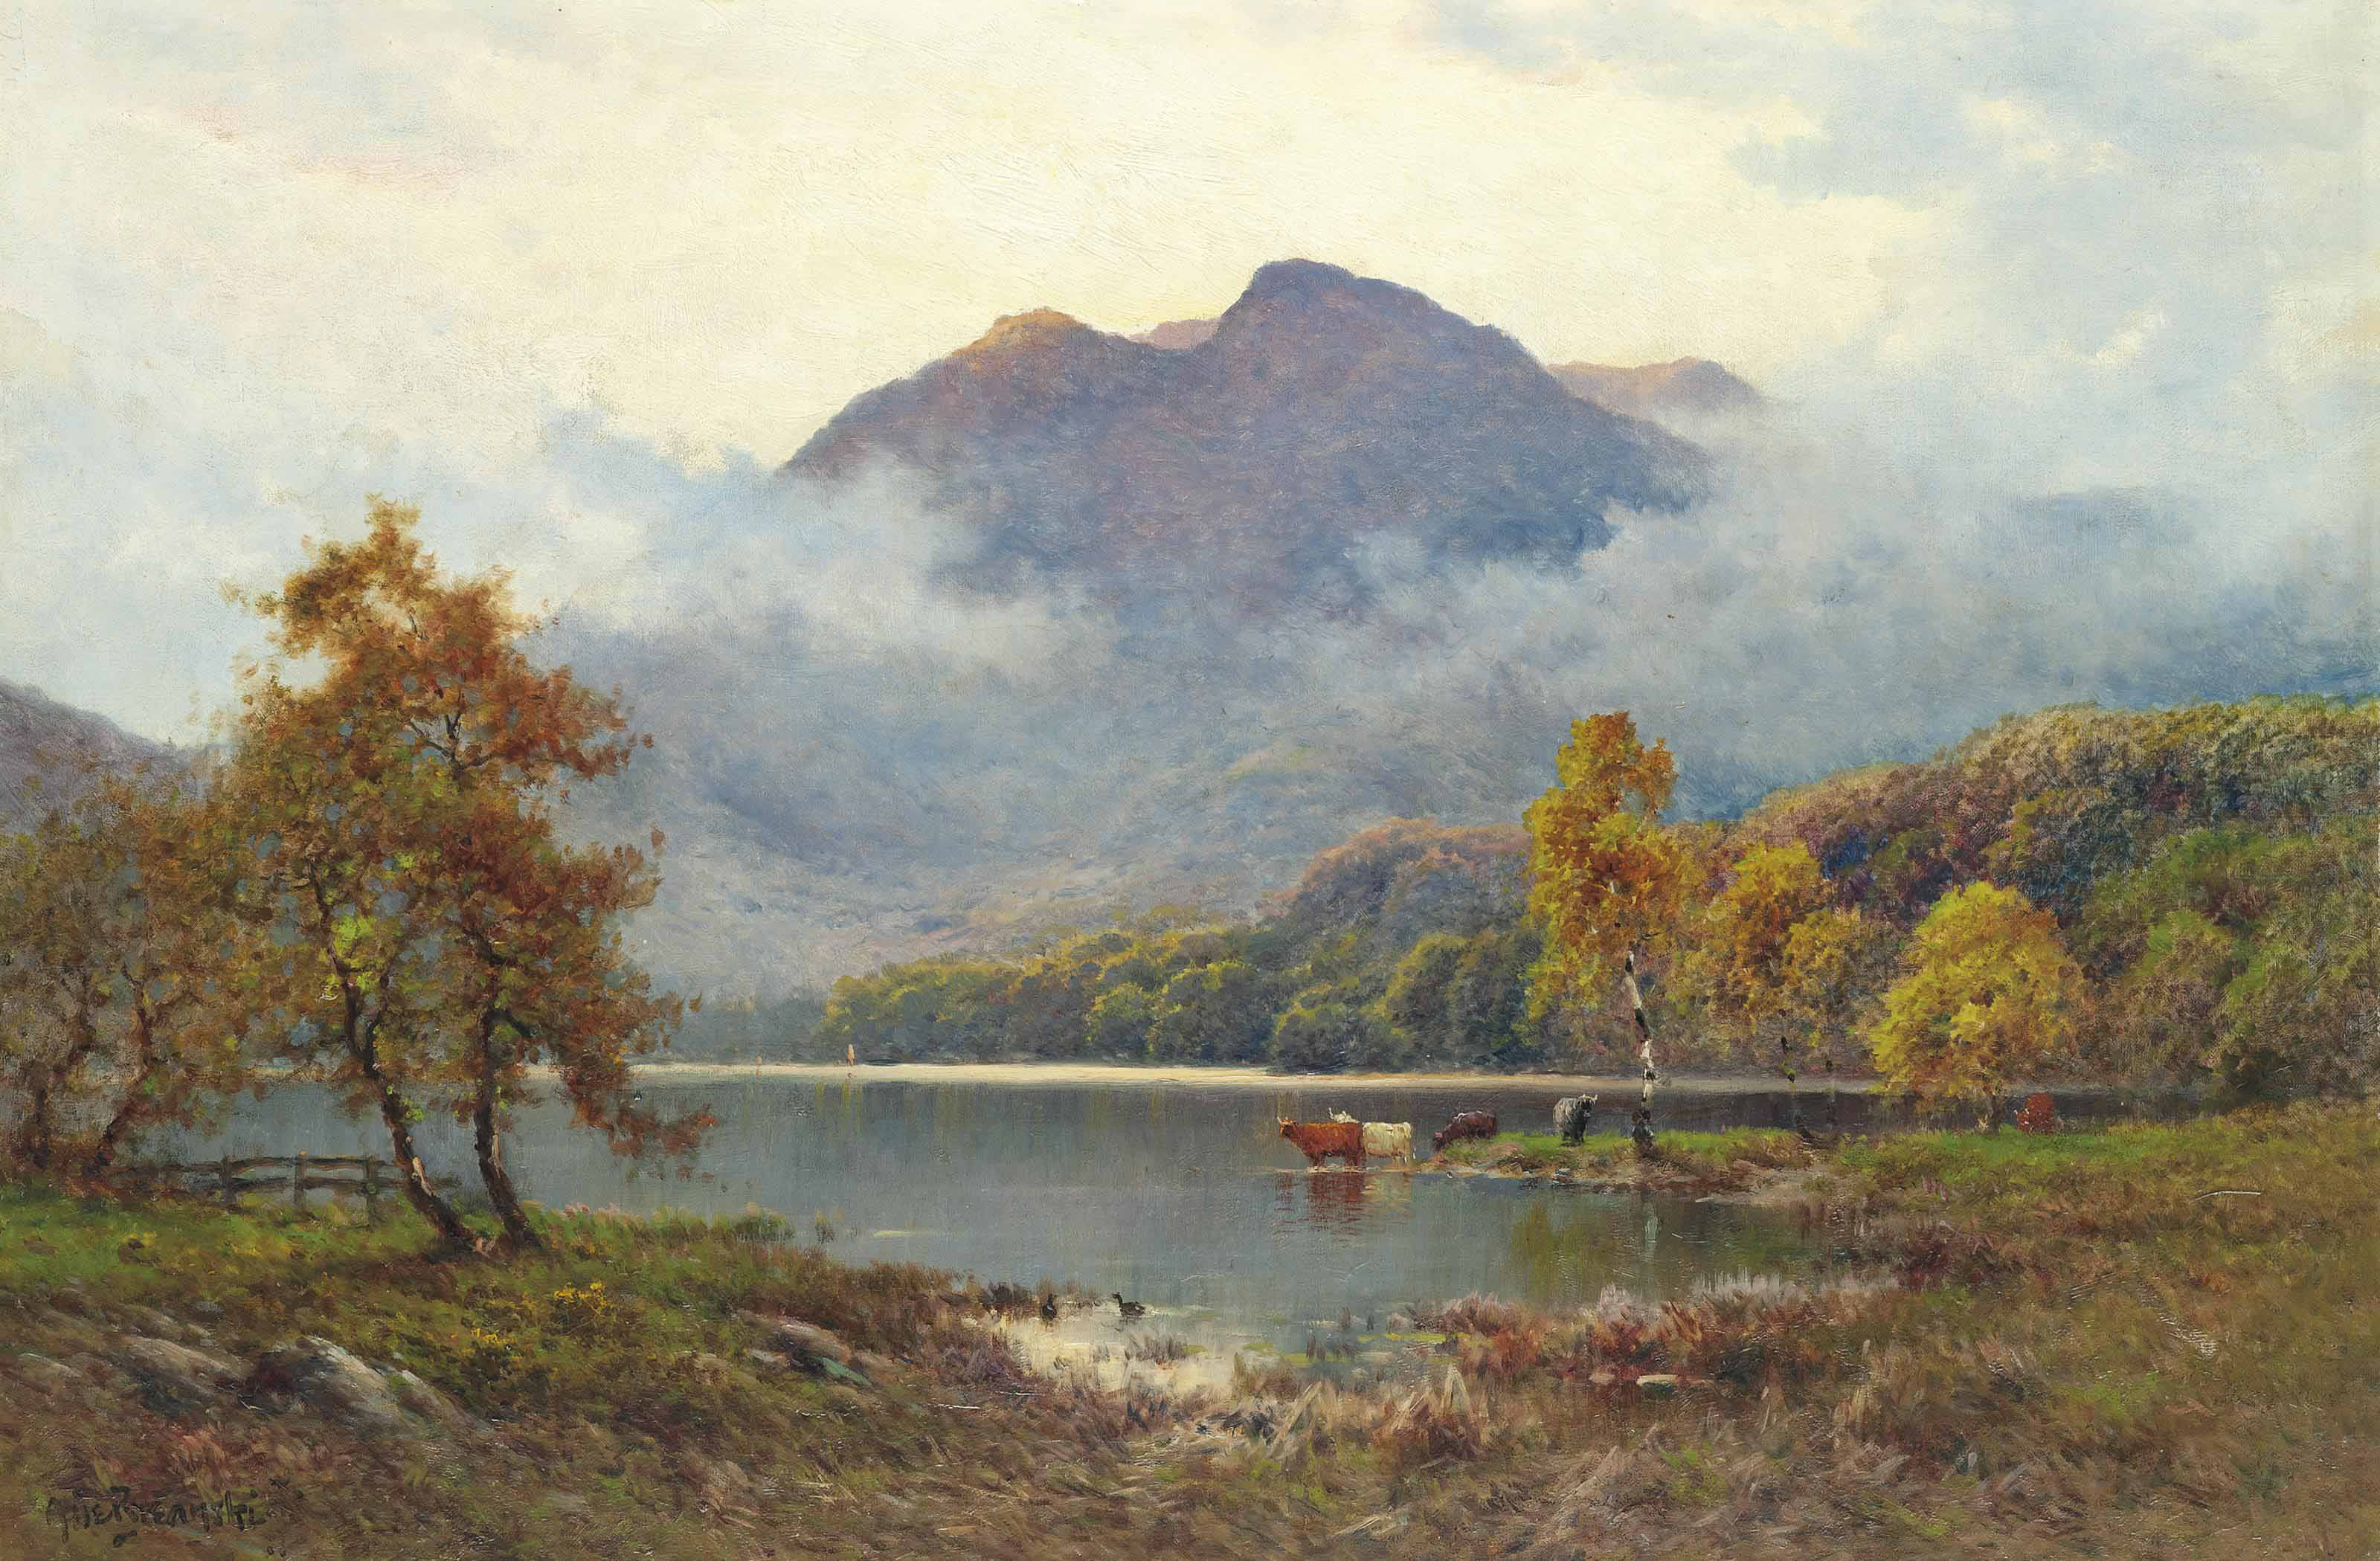 The Trossachs, Loch Achray and Ben Venue, Stirling